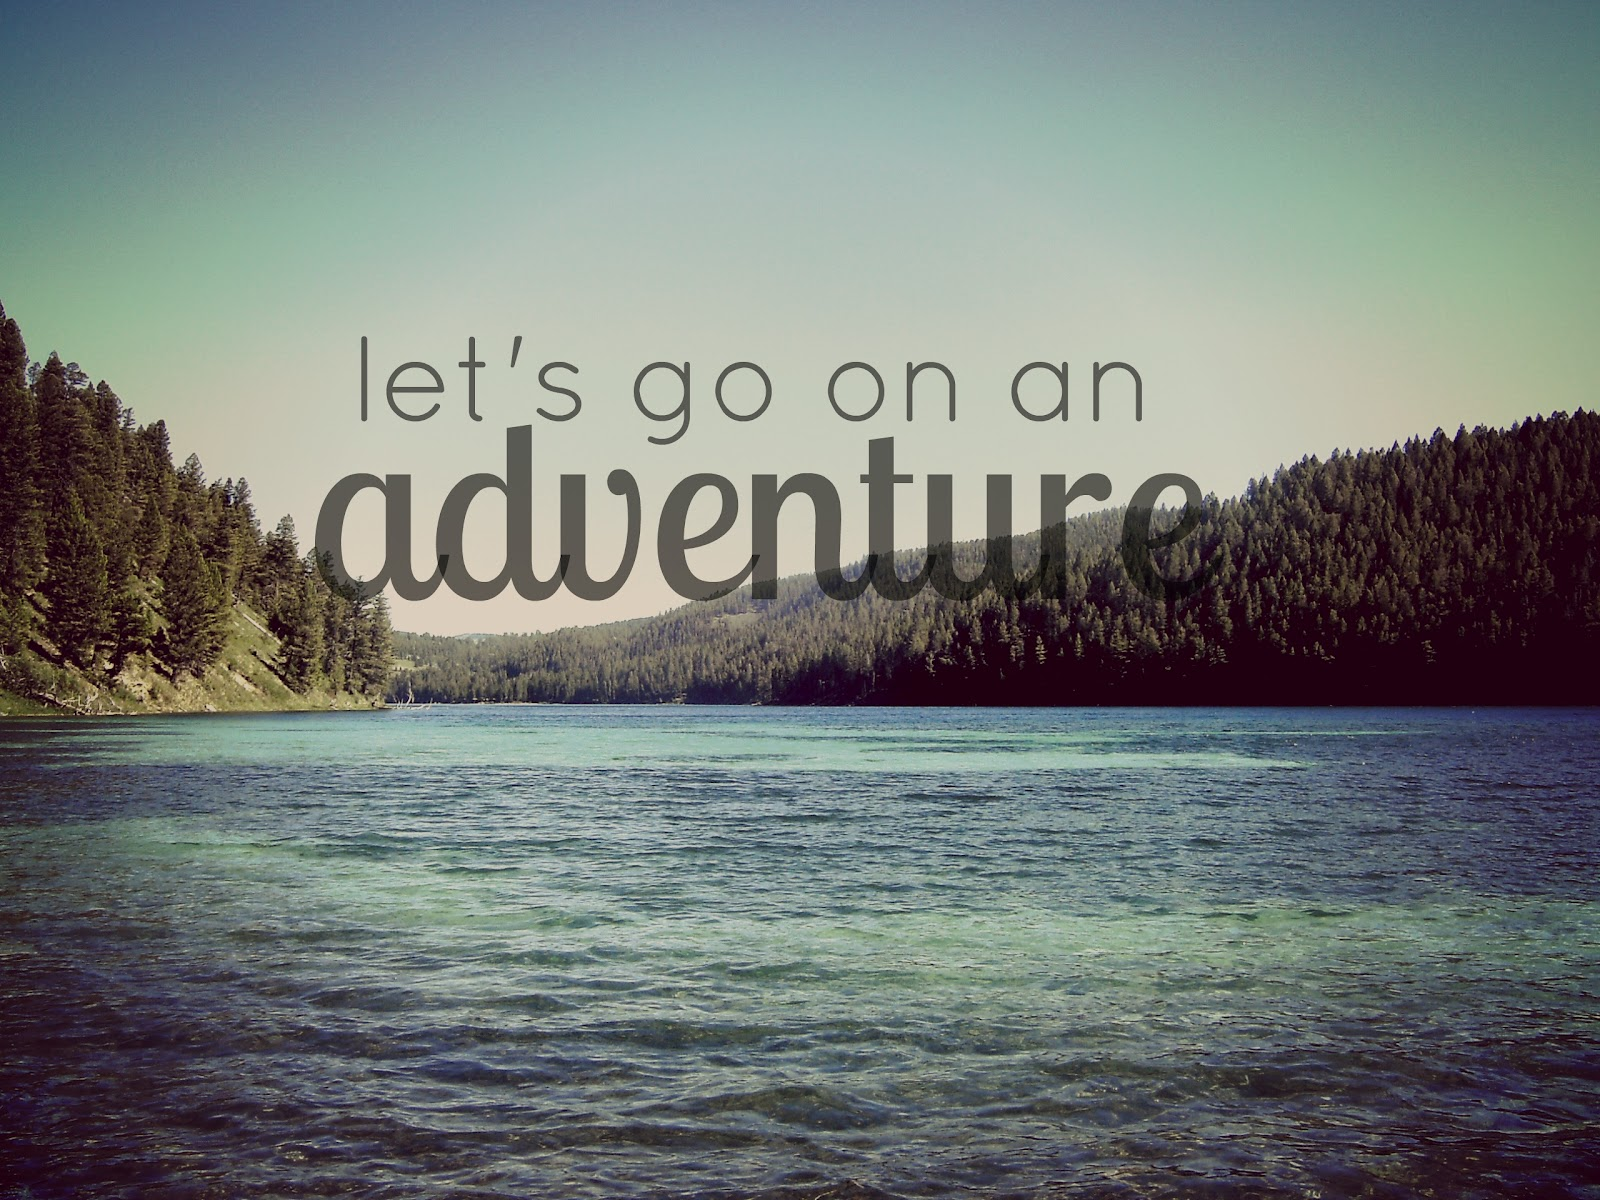 Adventure Quotes Quotesgram: Quotes About Adventures Backgrounds. QuotesGram